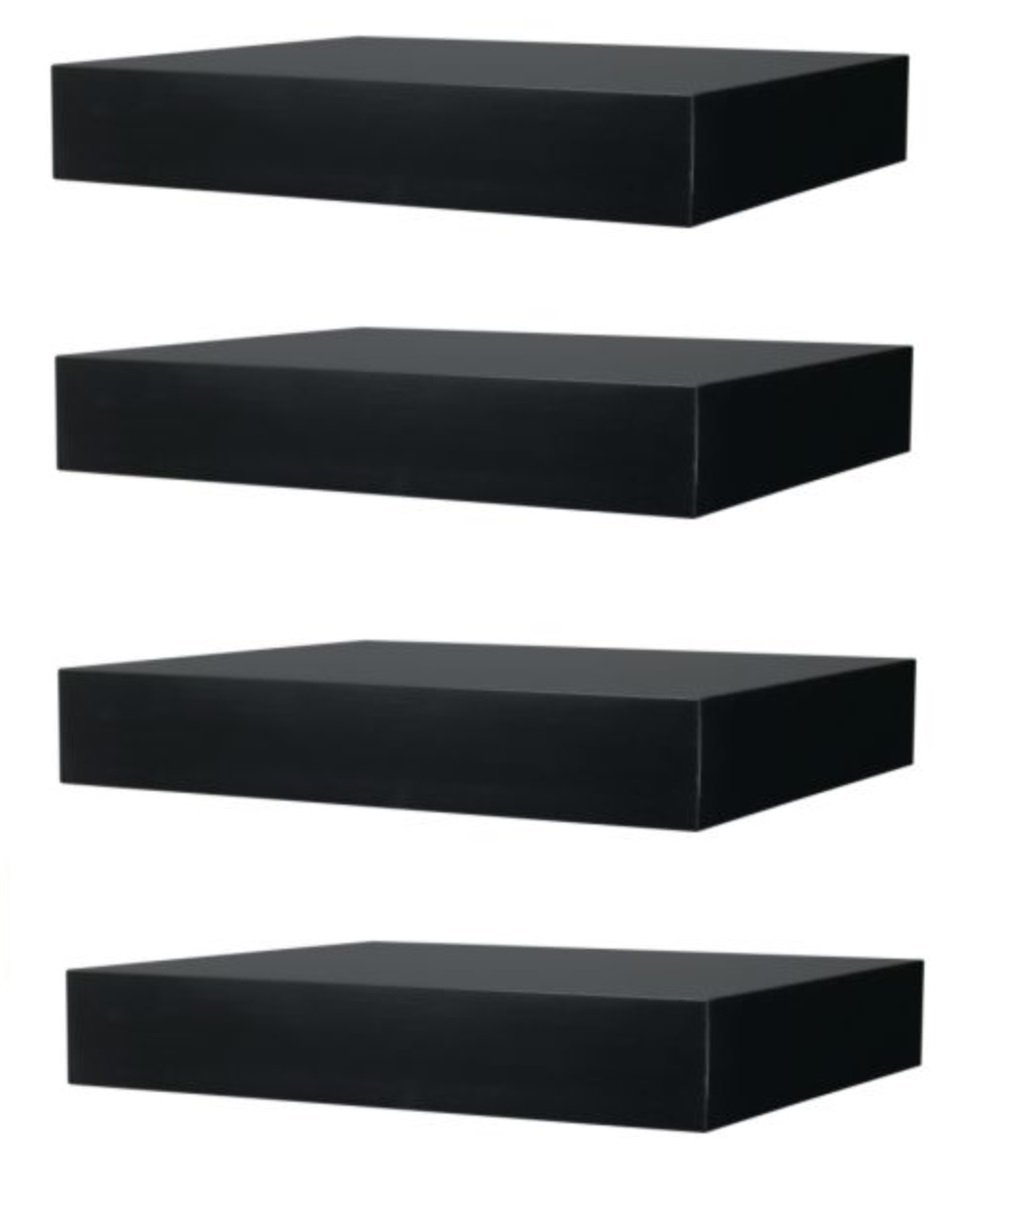 ikea floating wall lack shelf pack size black home kitchen vertical storage racks diy simple shelves for bedroom coat hook rack with mirror marble top island cart barnwood